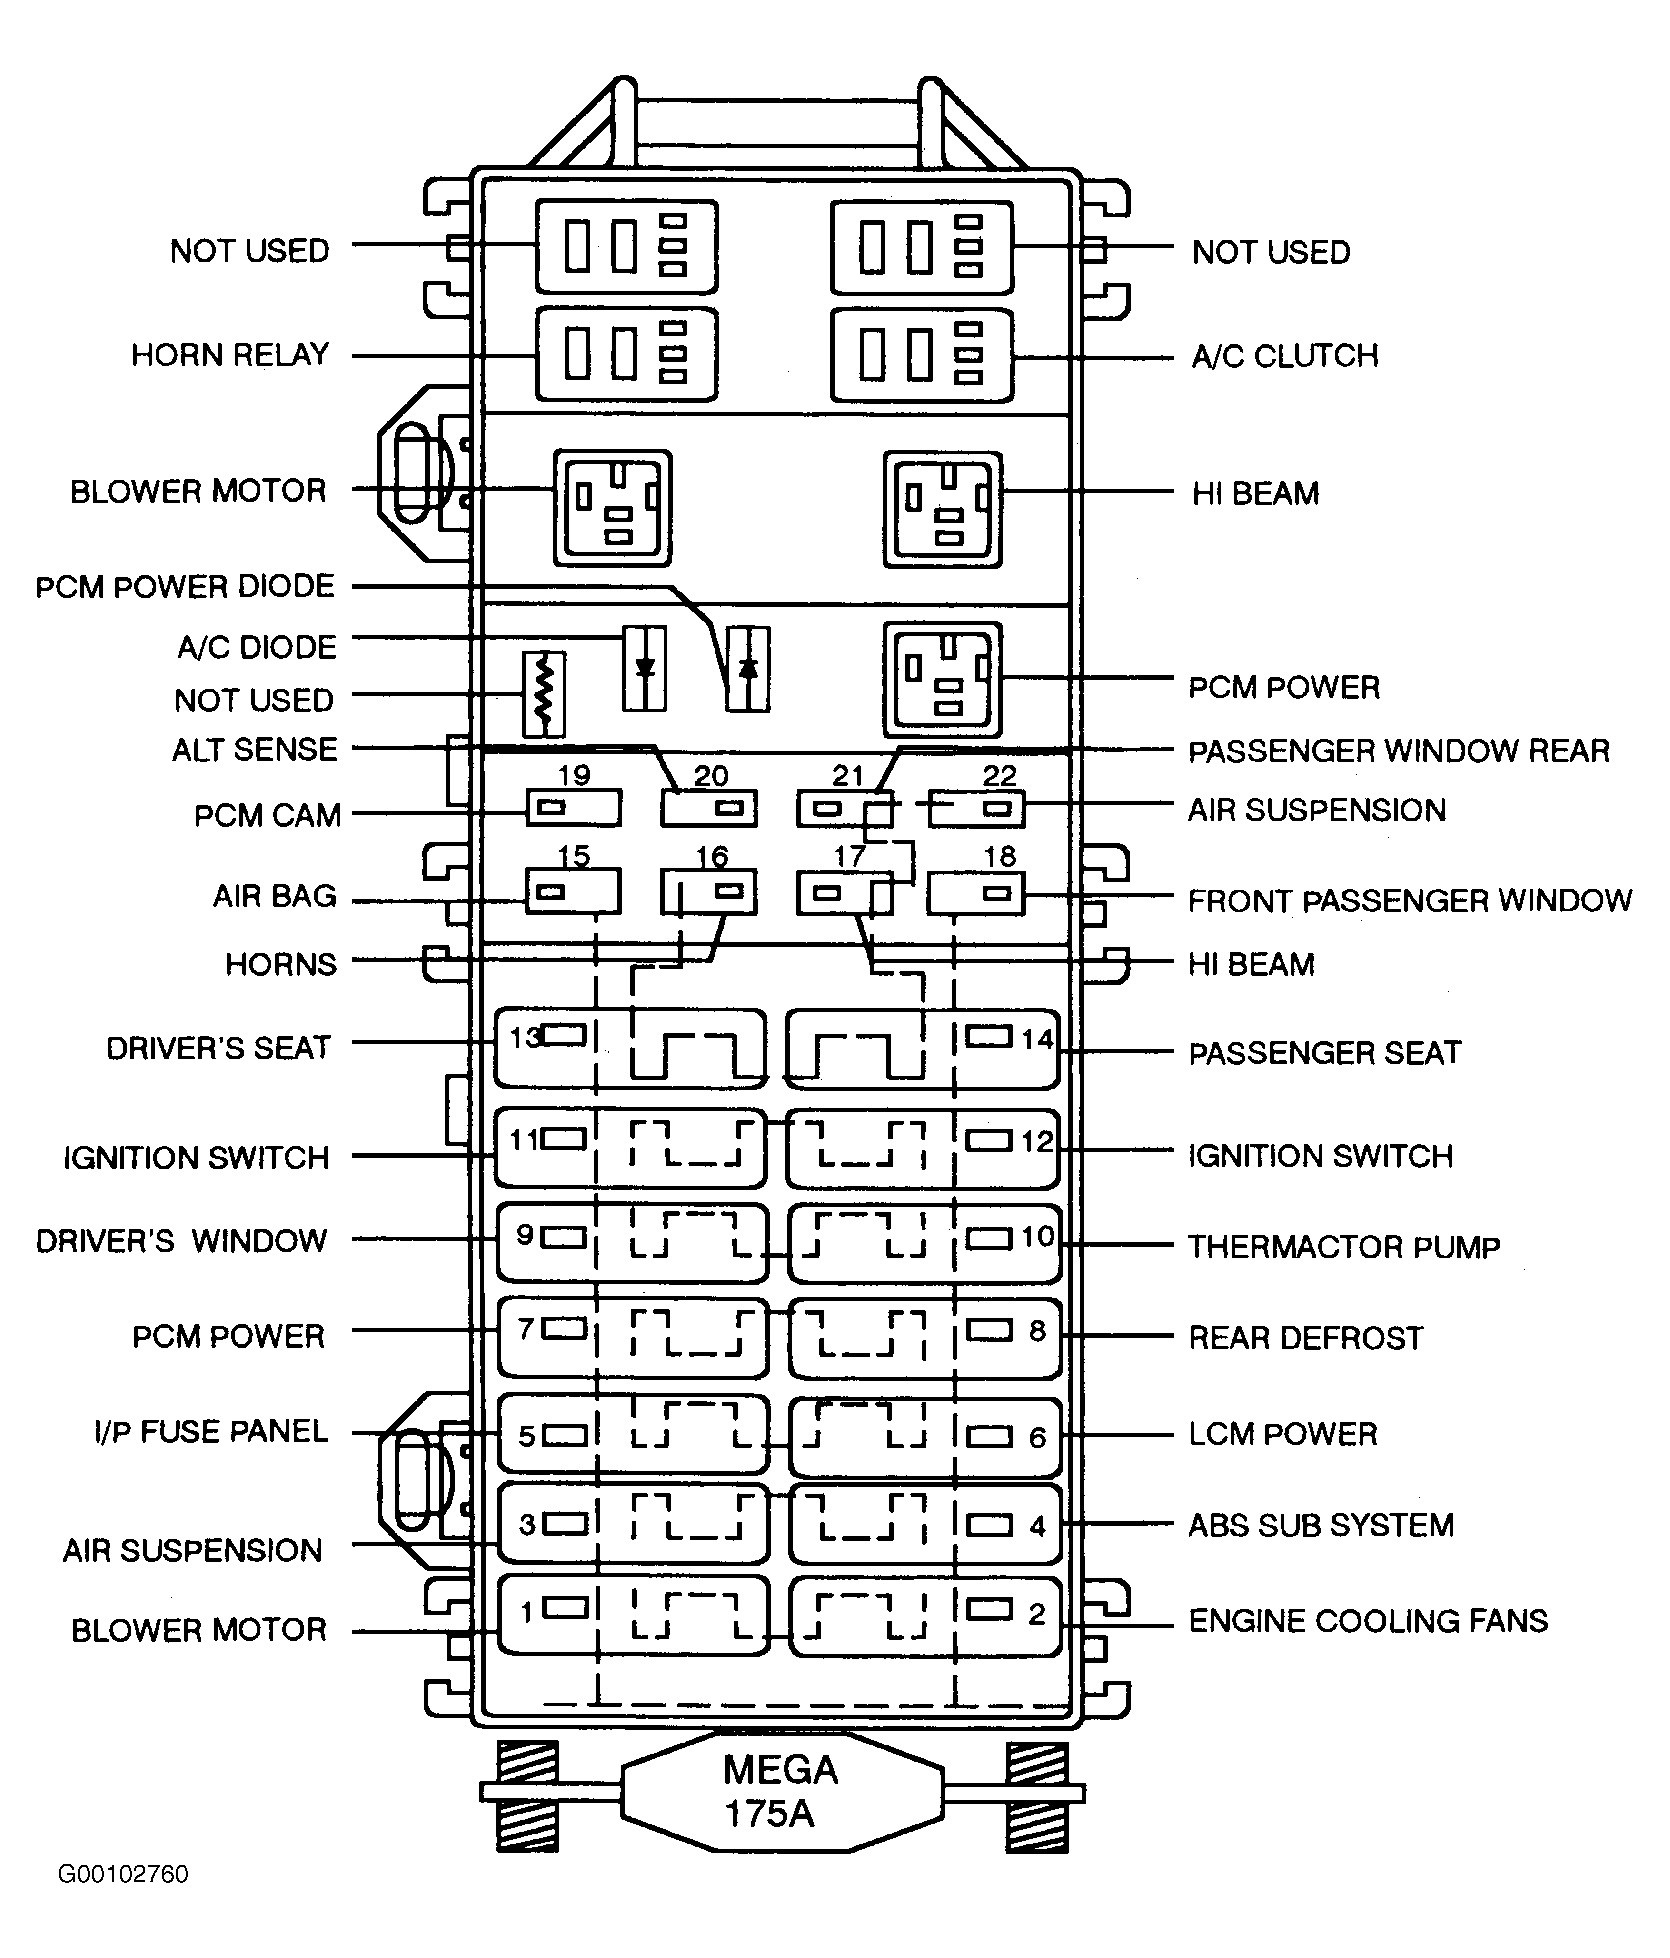 93 F150 Fuse Diagram Wiring Library 2012 E250 Car F 150 Box 91 Town Simple